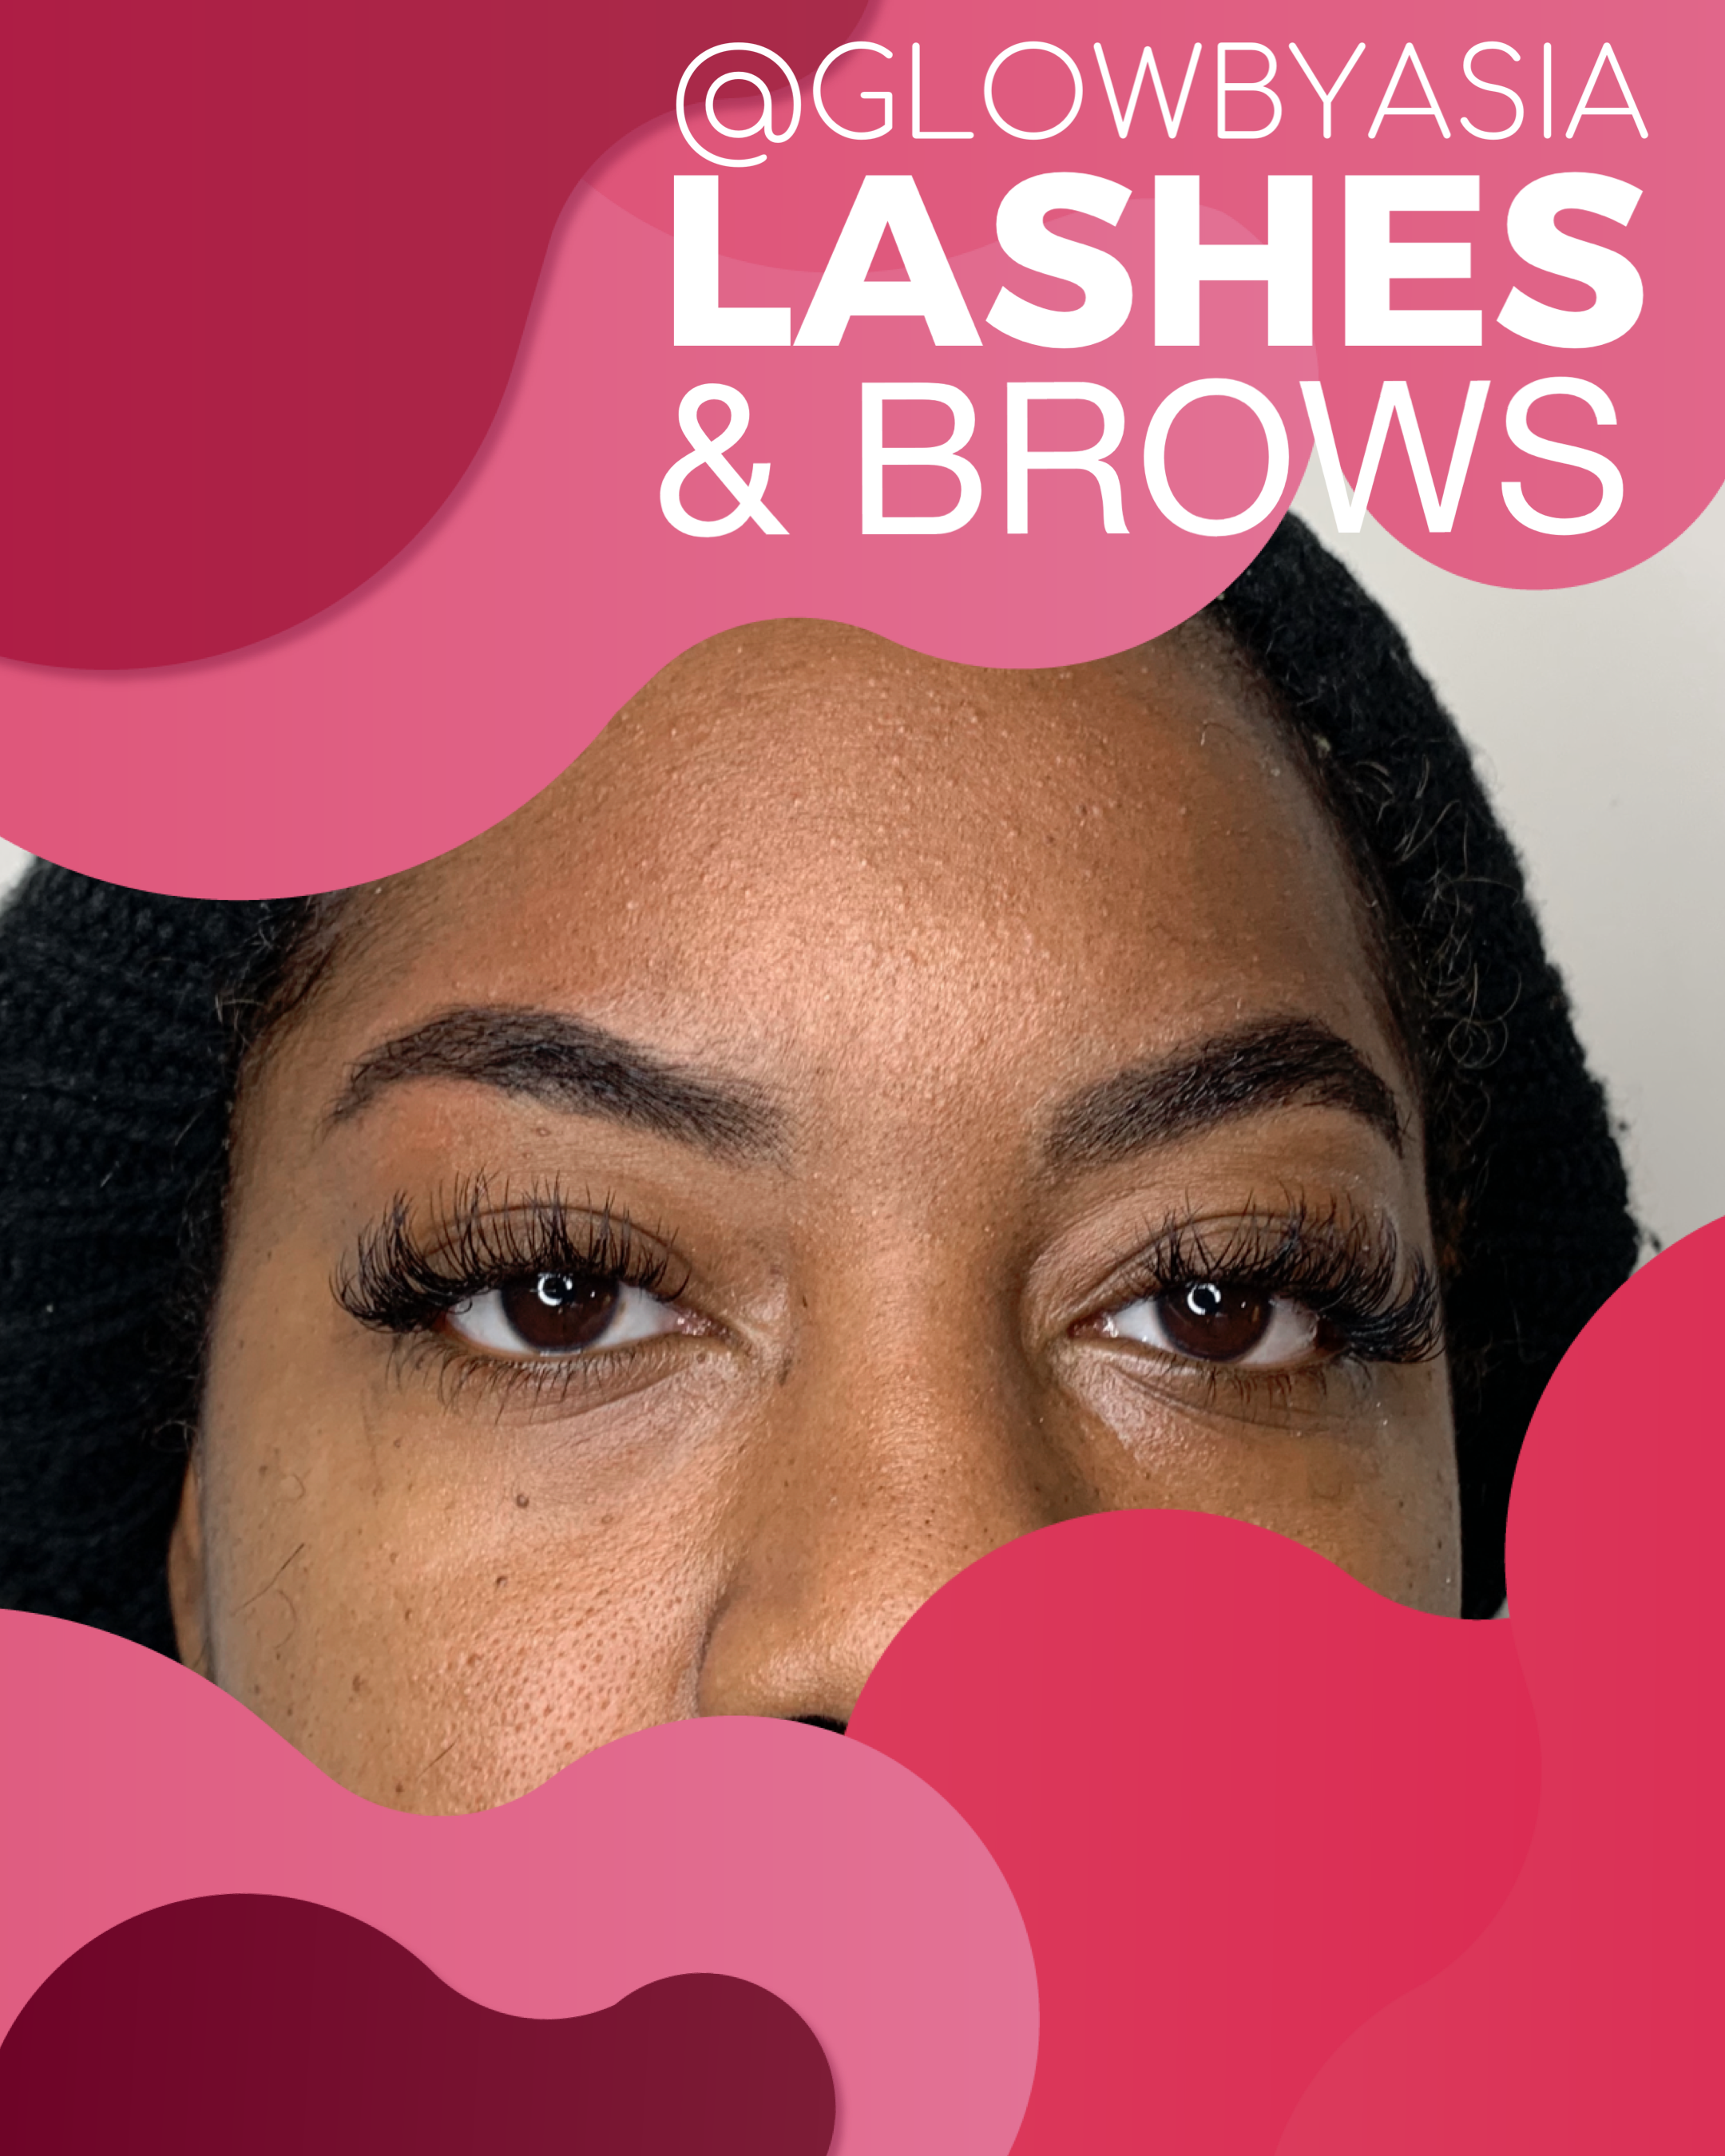 Classic Lashes & Brows